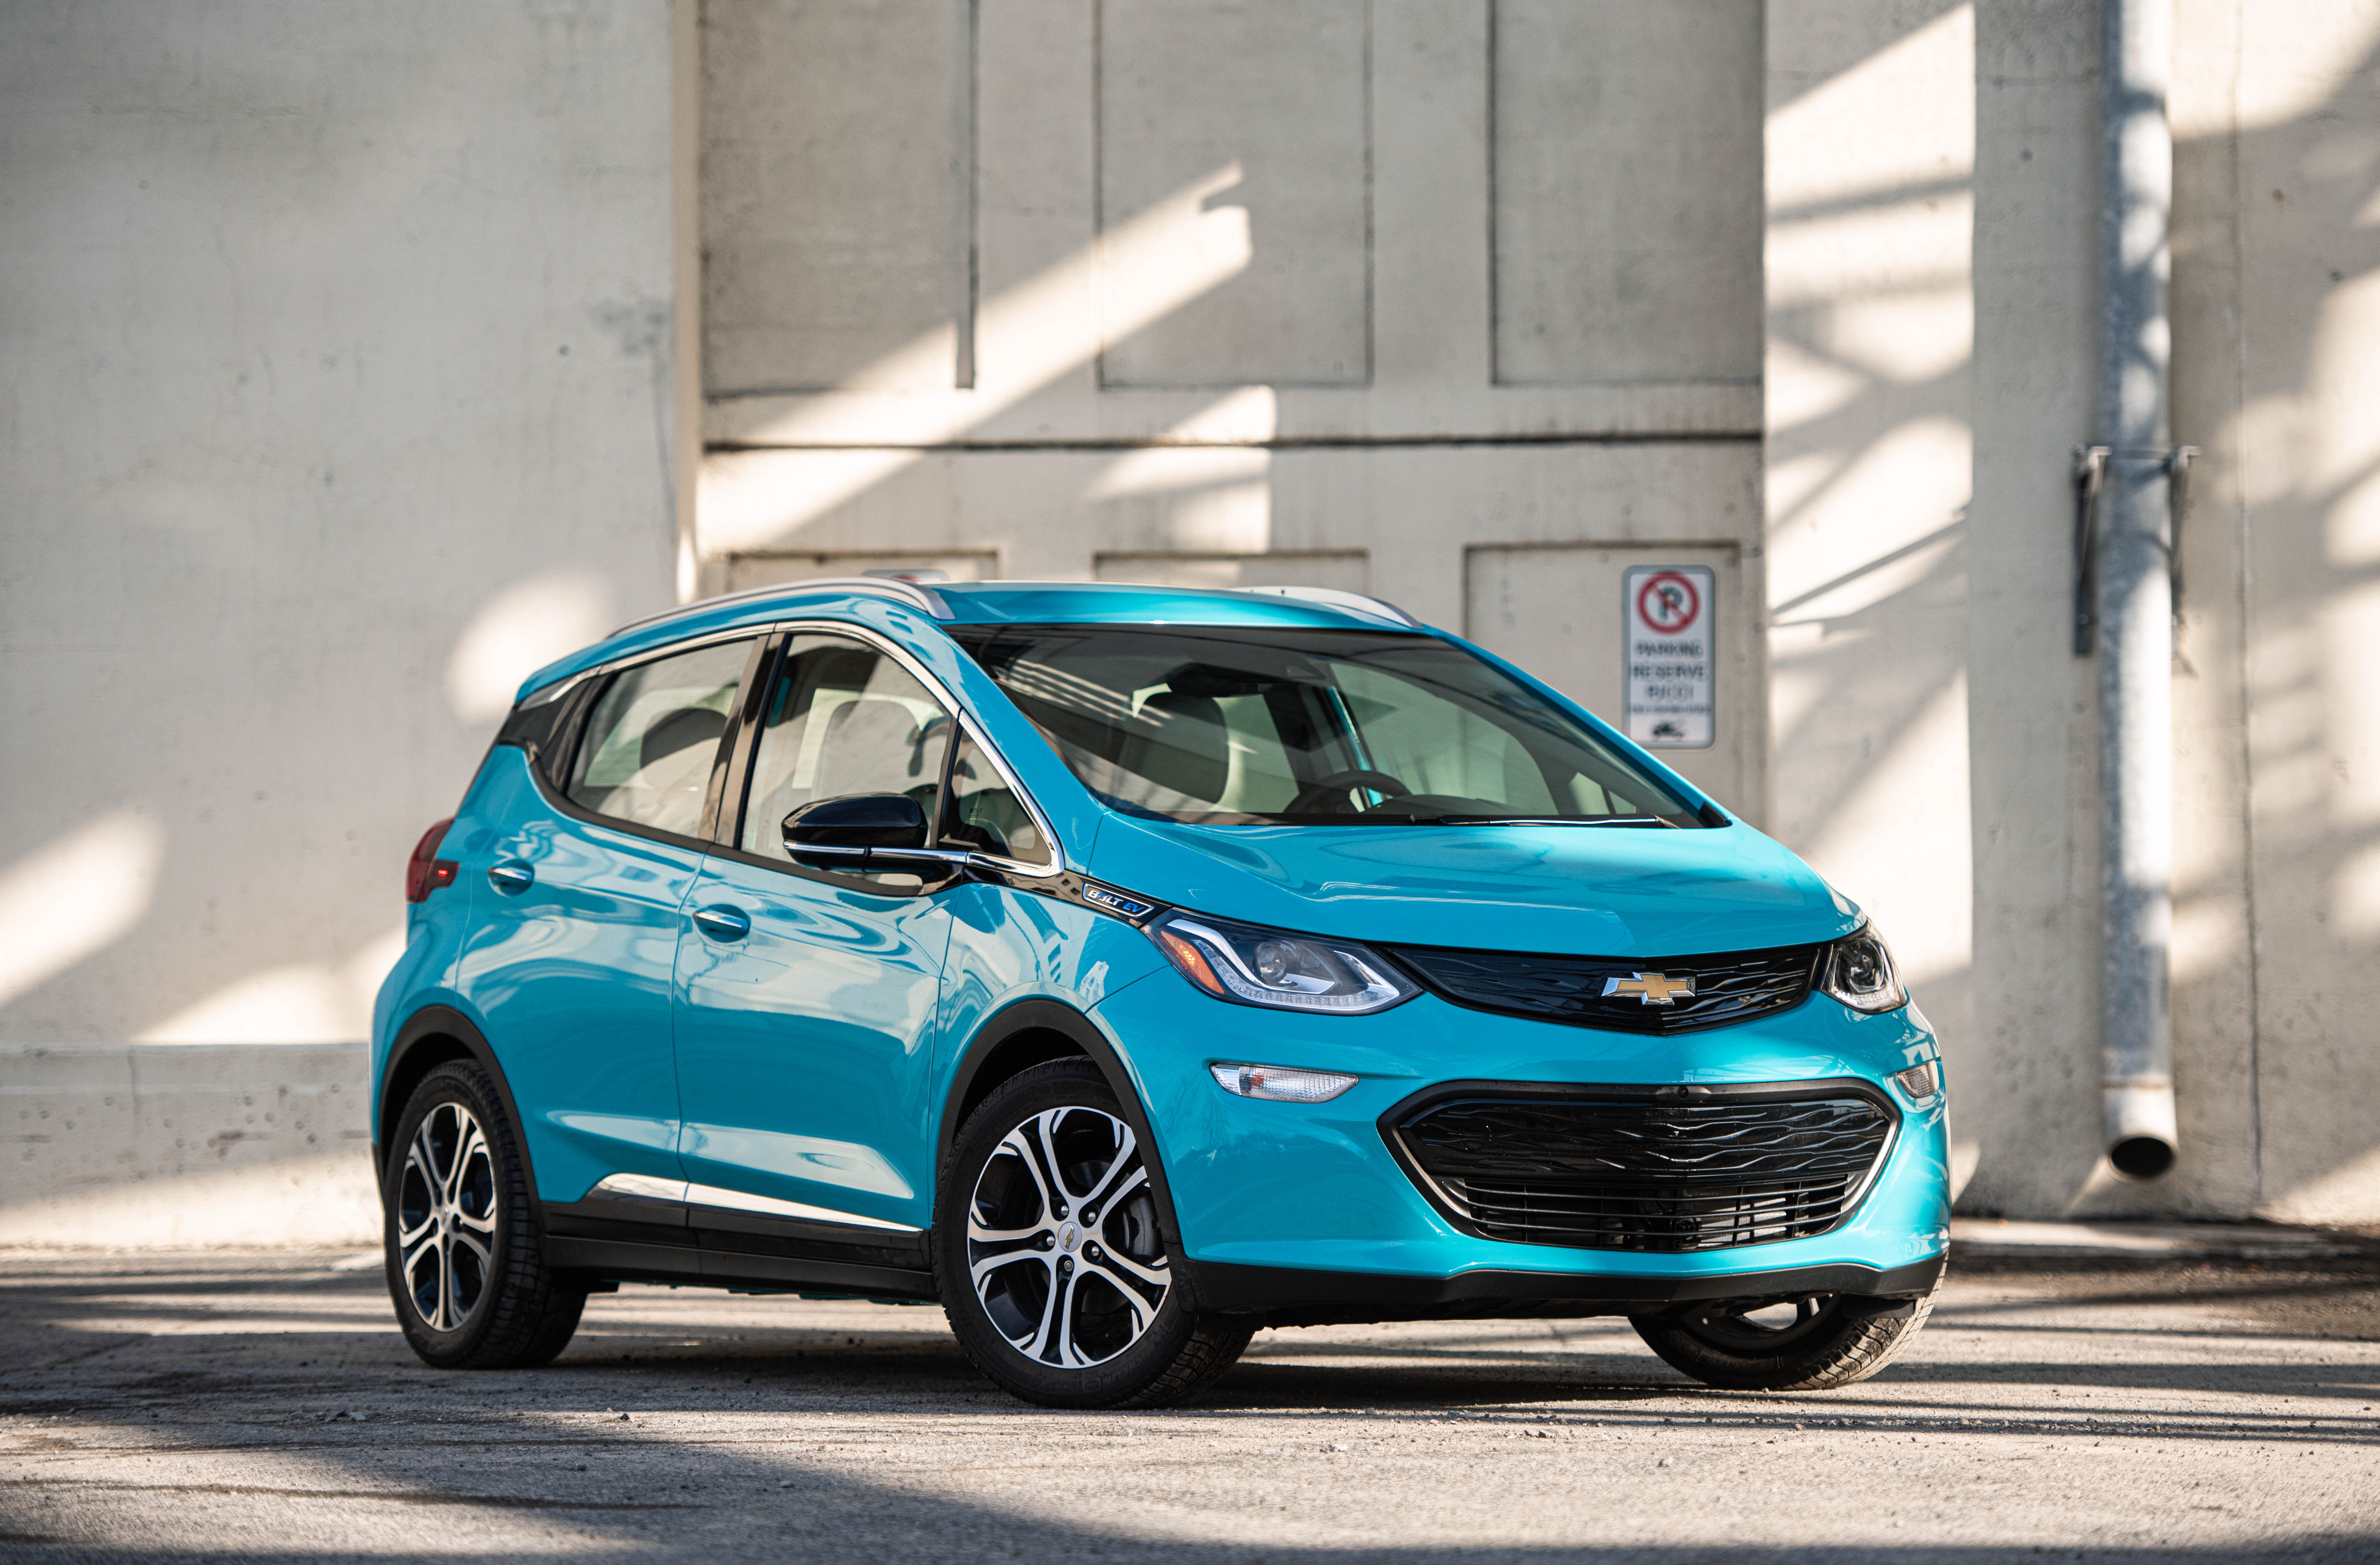 2020 Chevrolet Bolt Ev Doesn T Perform Better In The Cold But